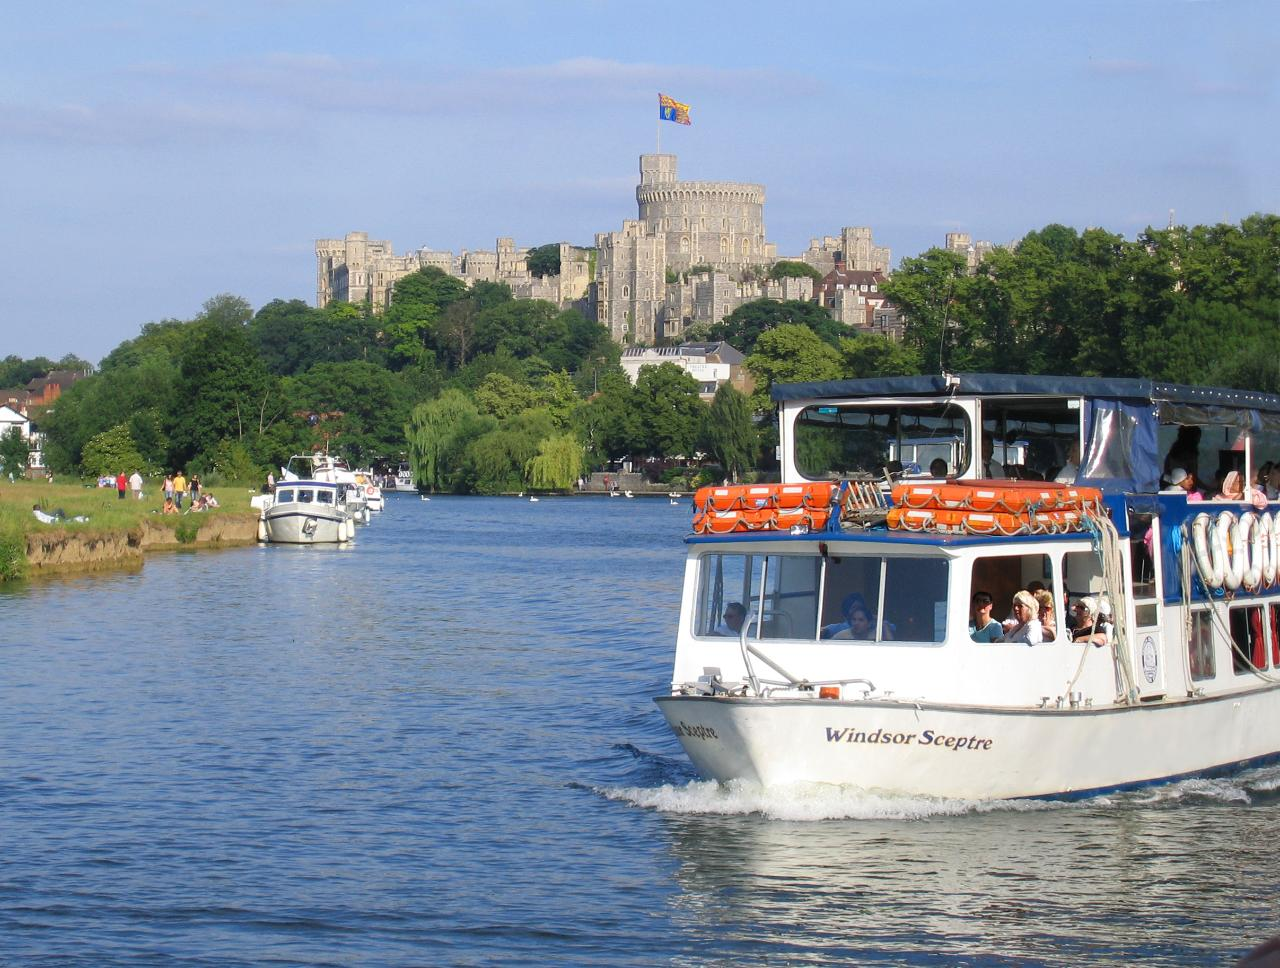 Windsor River Cruise with delicious Ploughman's lunch OR Windsor Only - Mon 29th Apr 2019